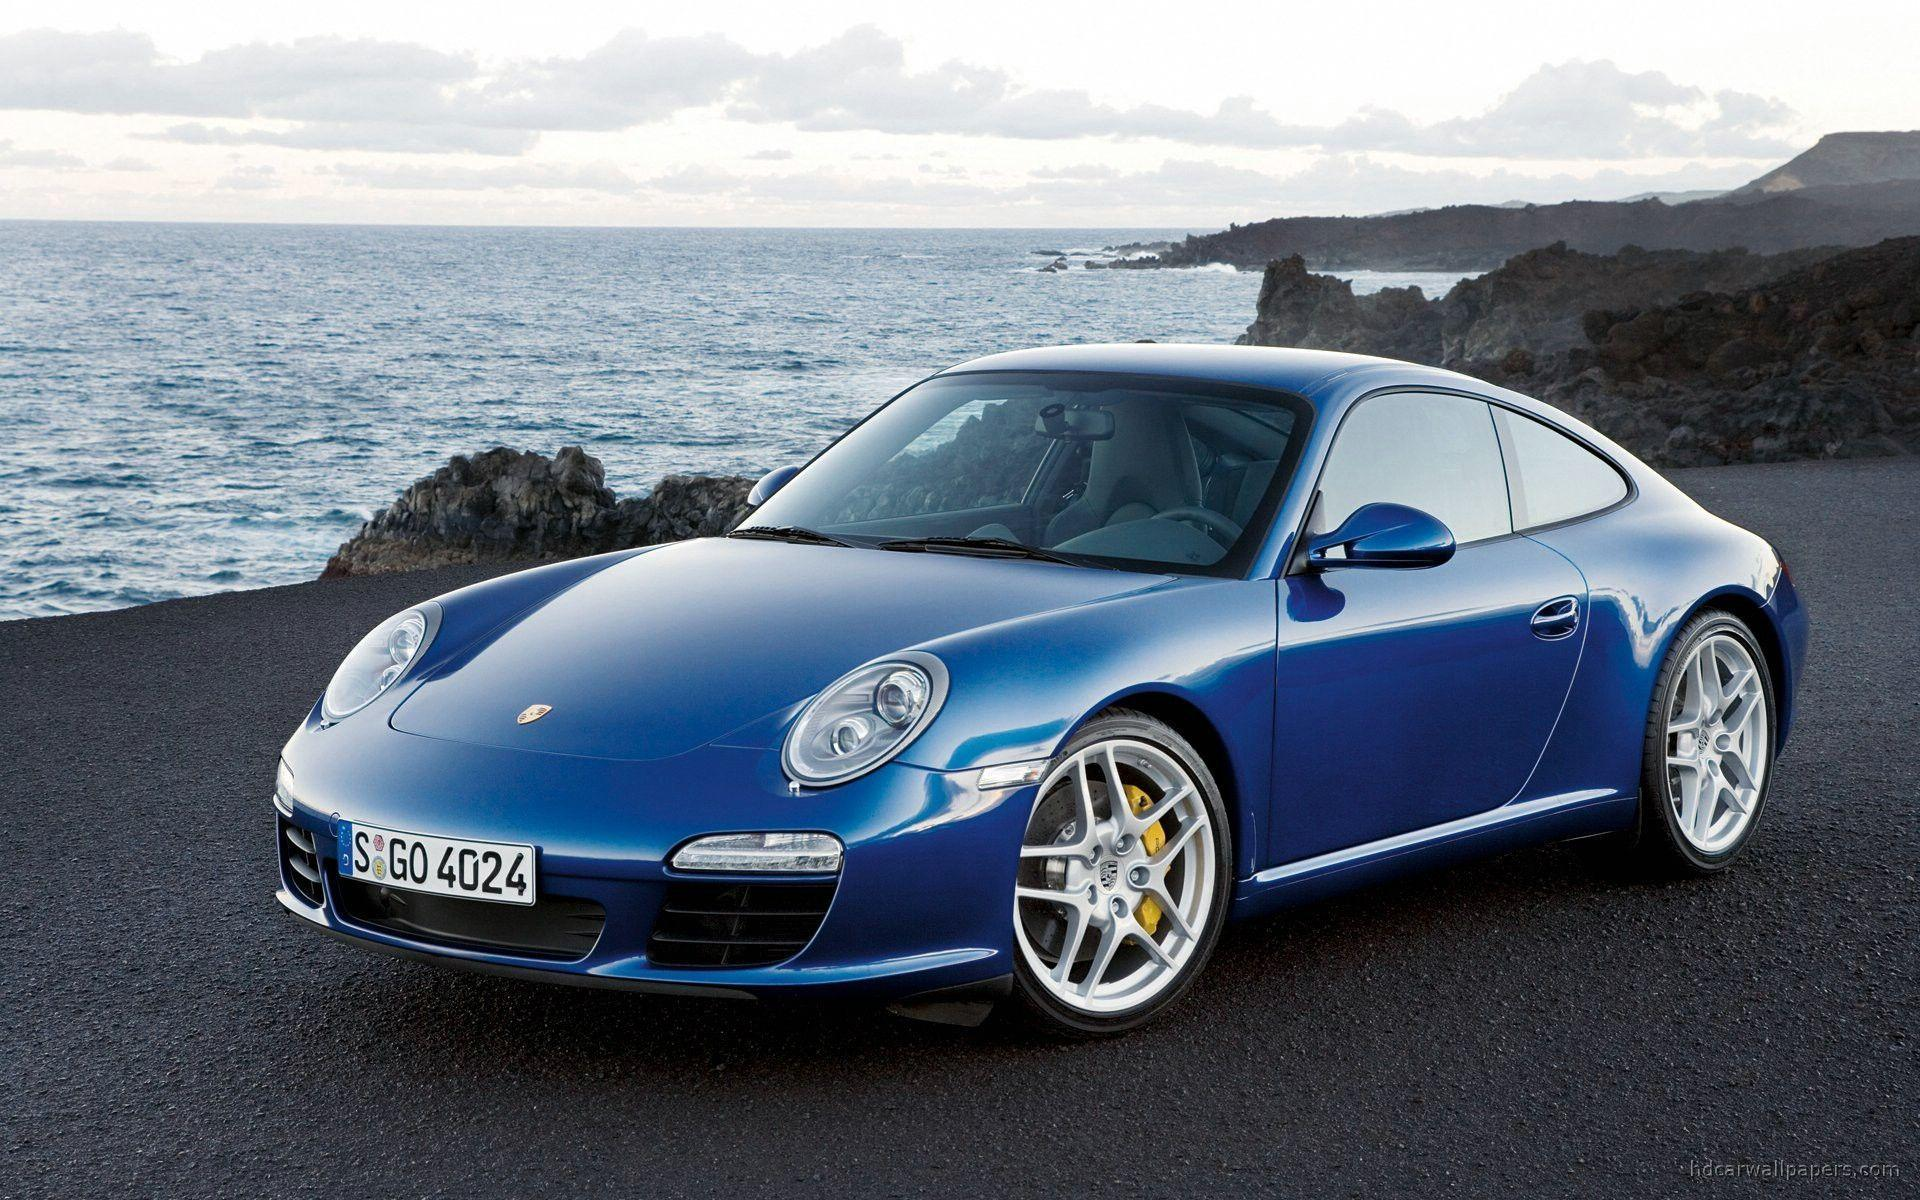 Porsche 911 Carrera S Wallpapers | HD Wallpapers